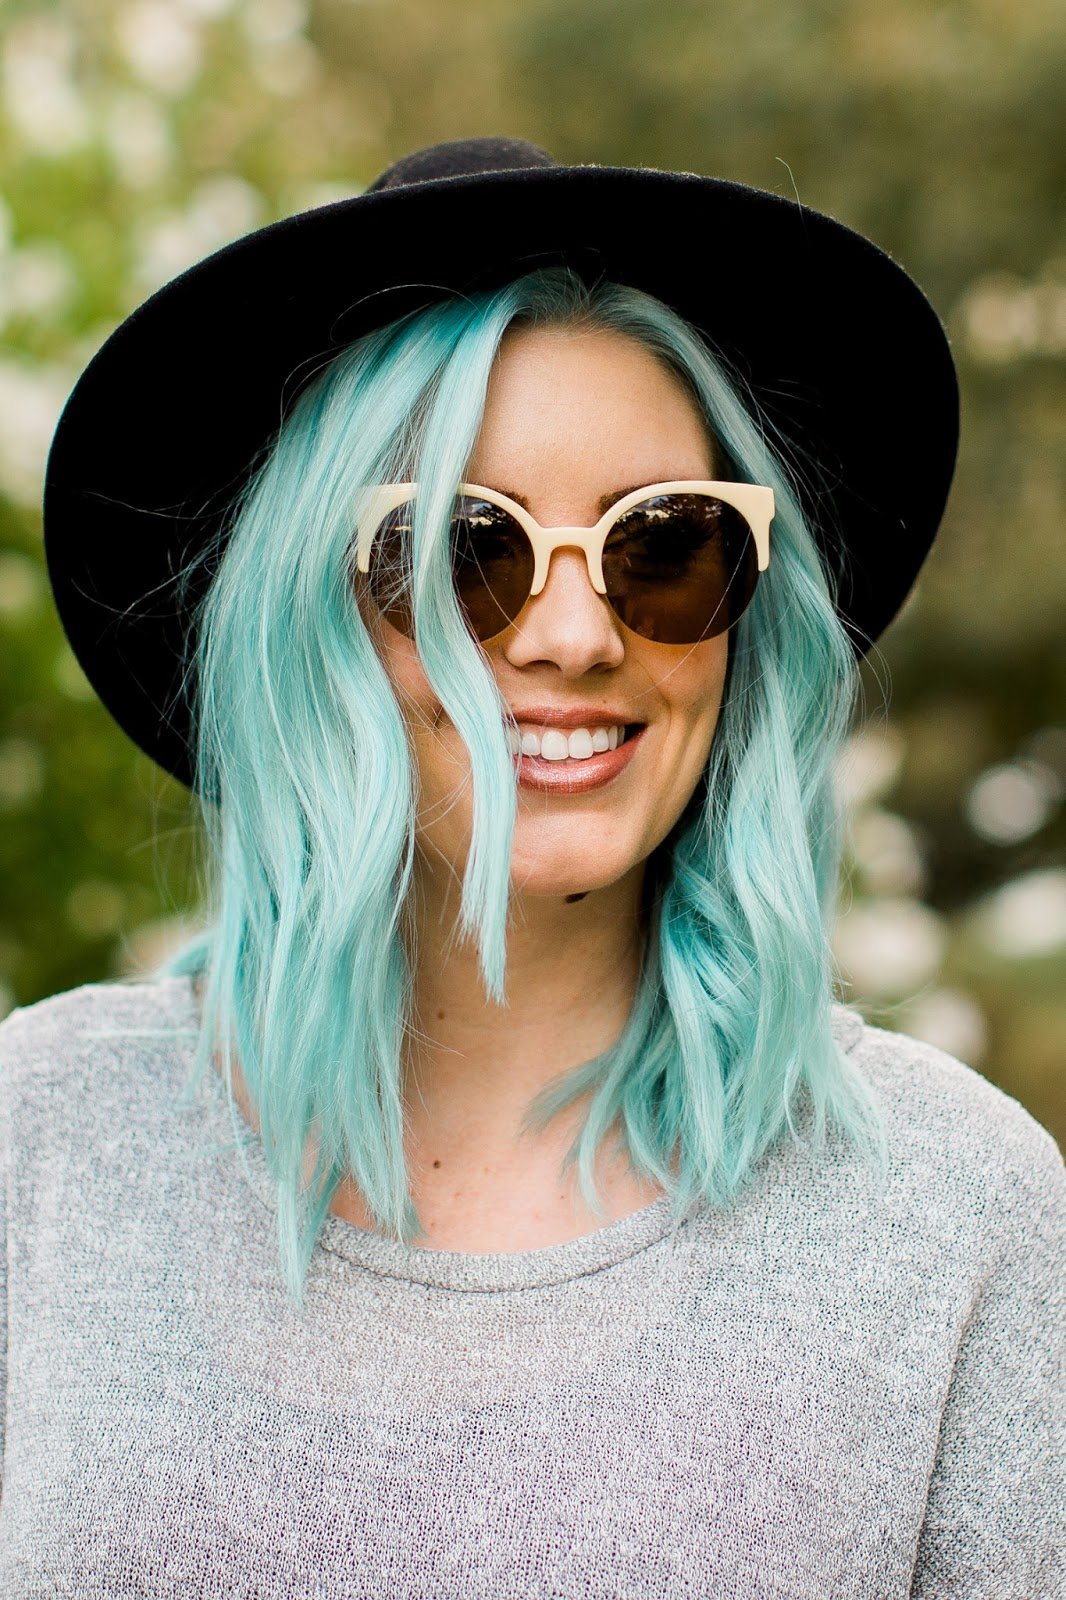 Black Hat, Cat Eye Sunglasses, Blue hair